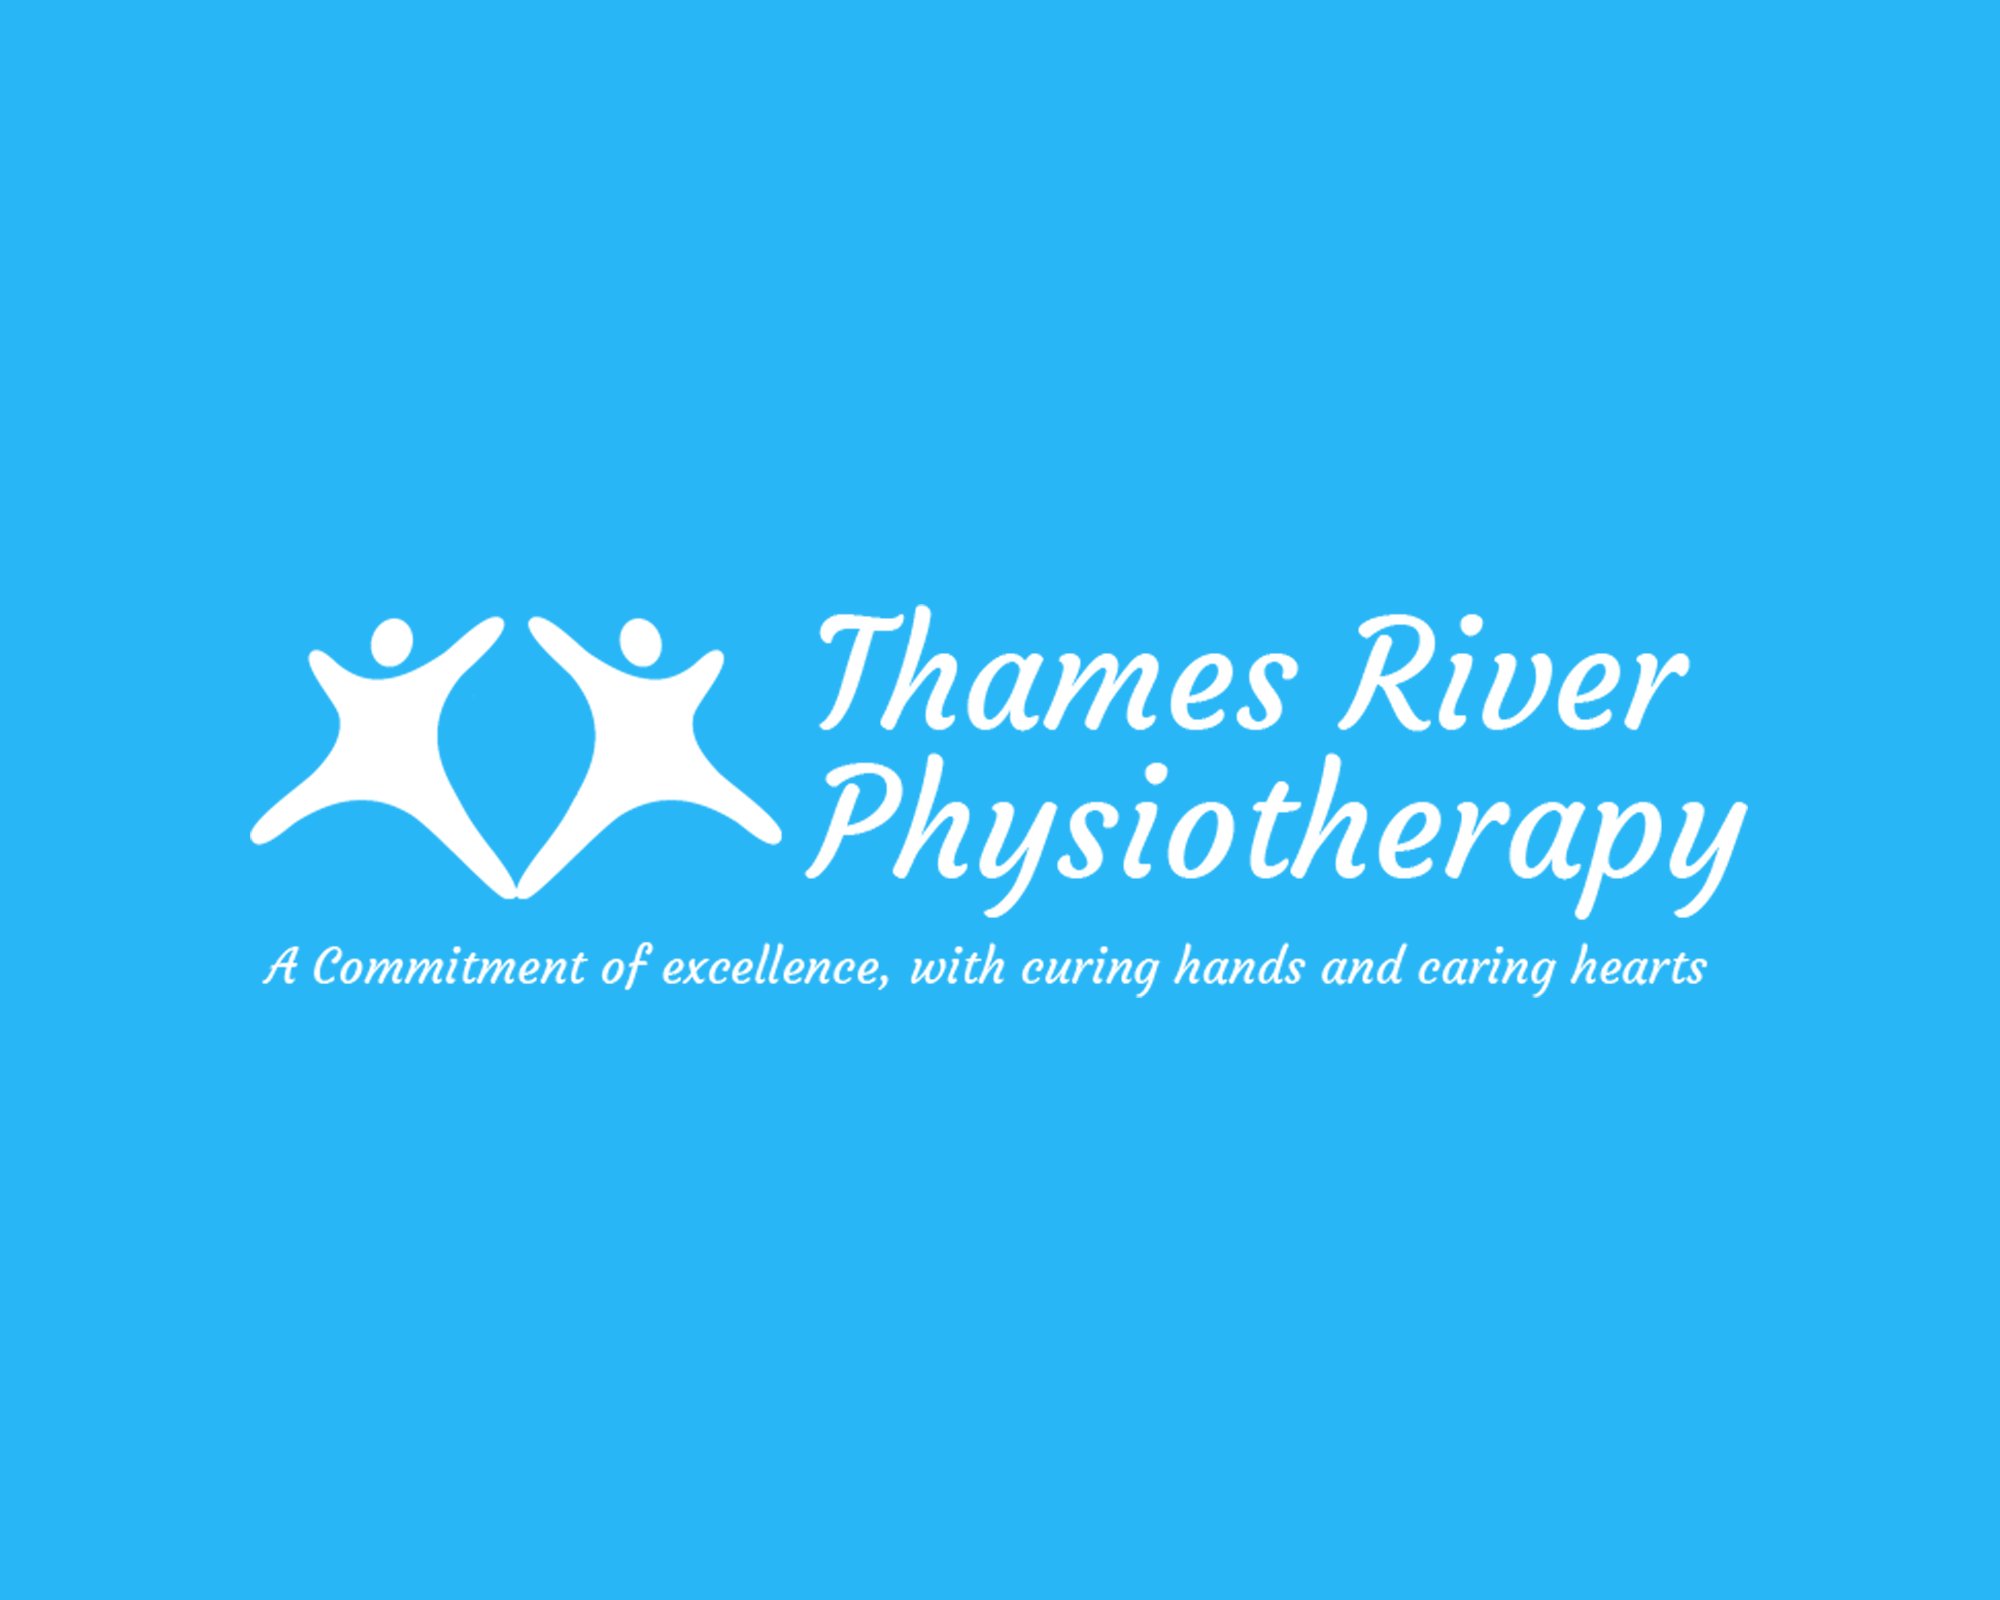 thames river physiotherapy Logo